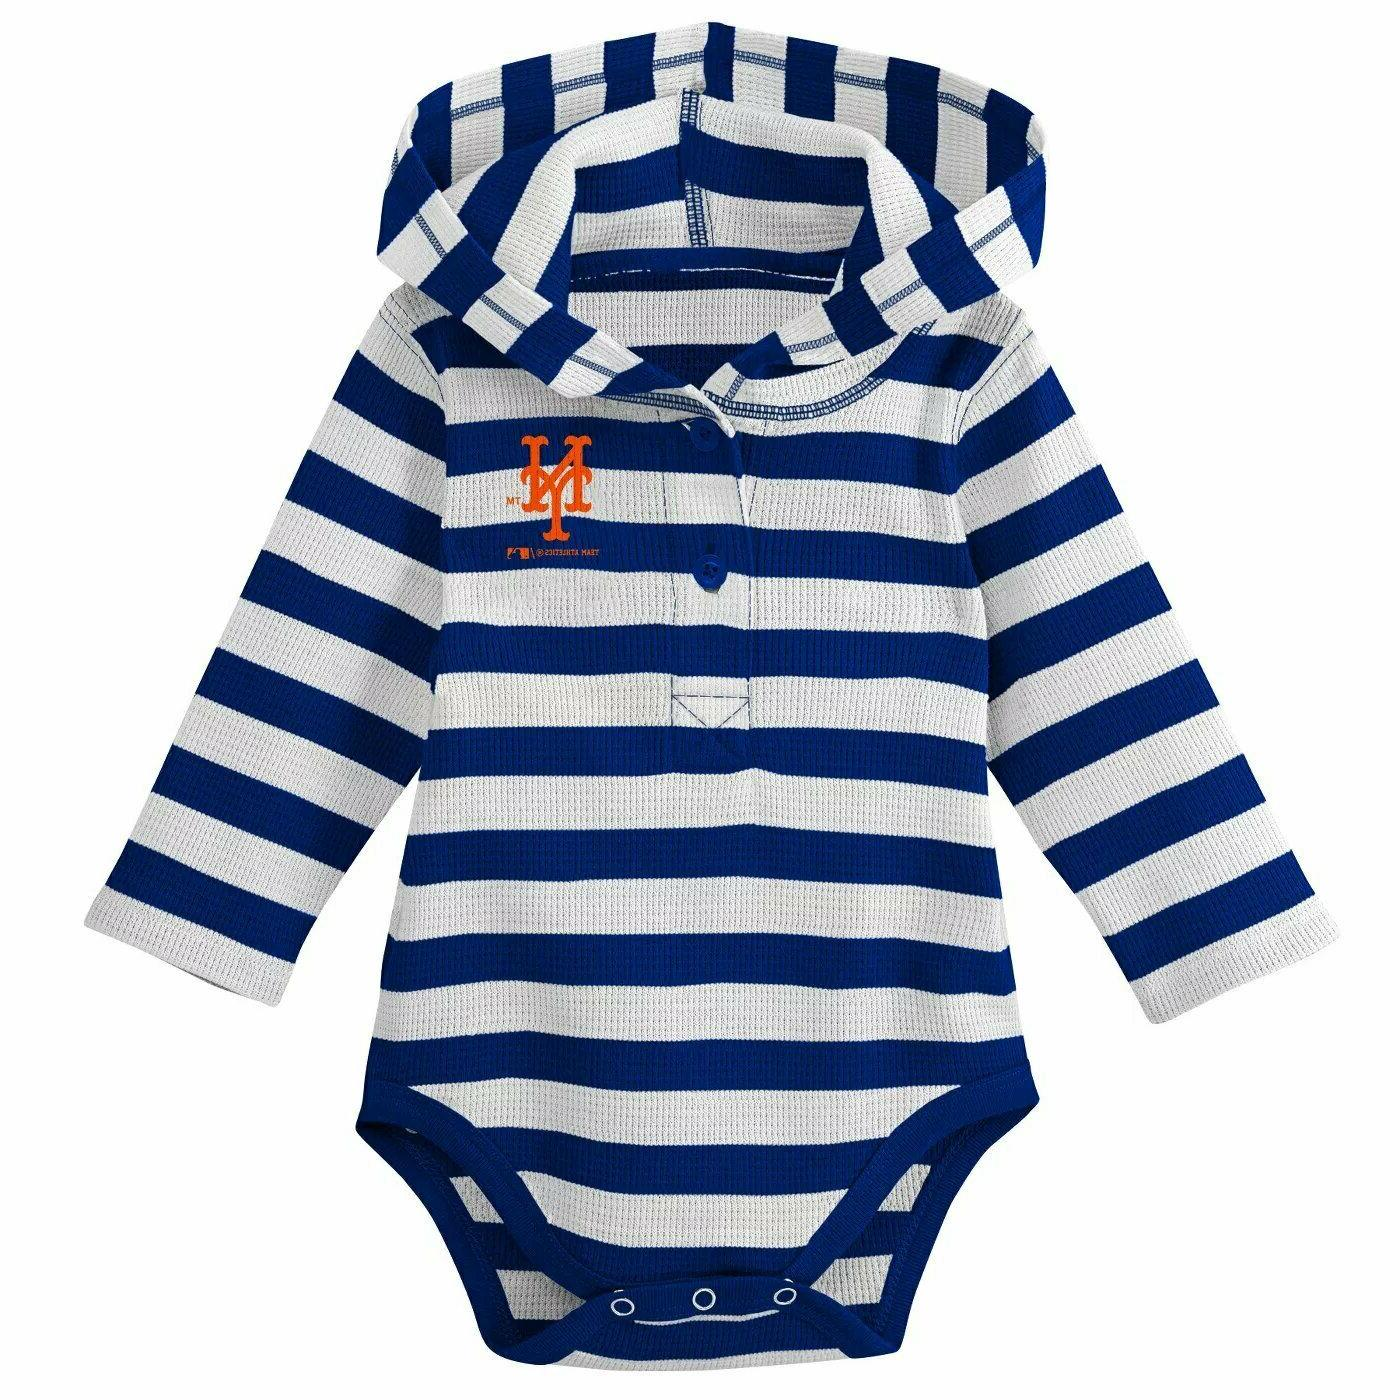 MLB New York Mets Striped Long Sleeve Baby / Toddler Hooded